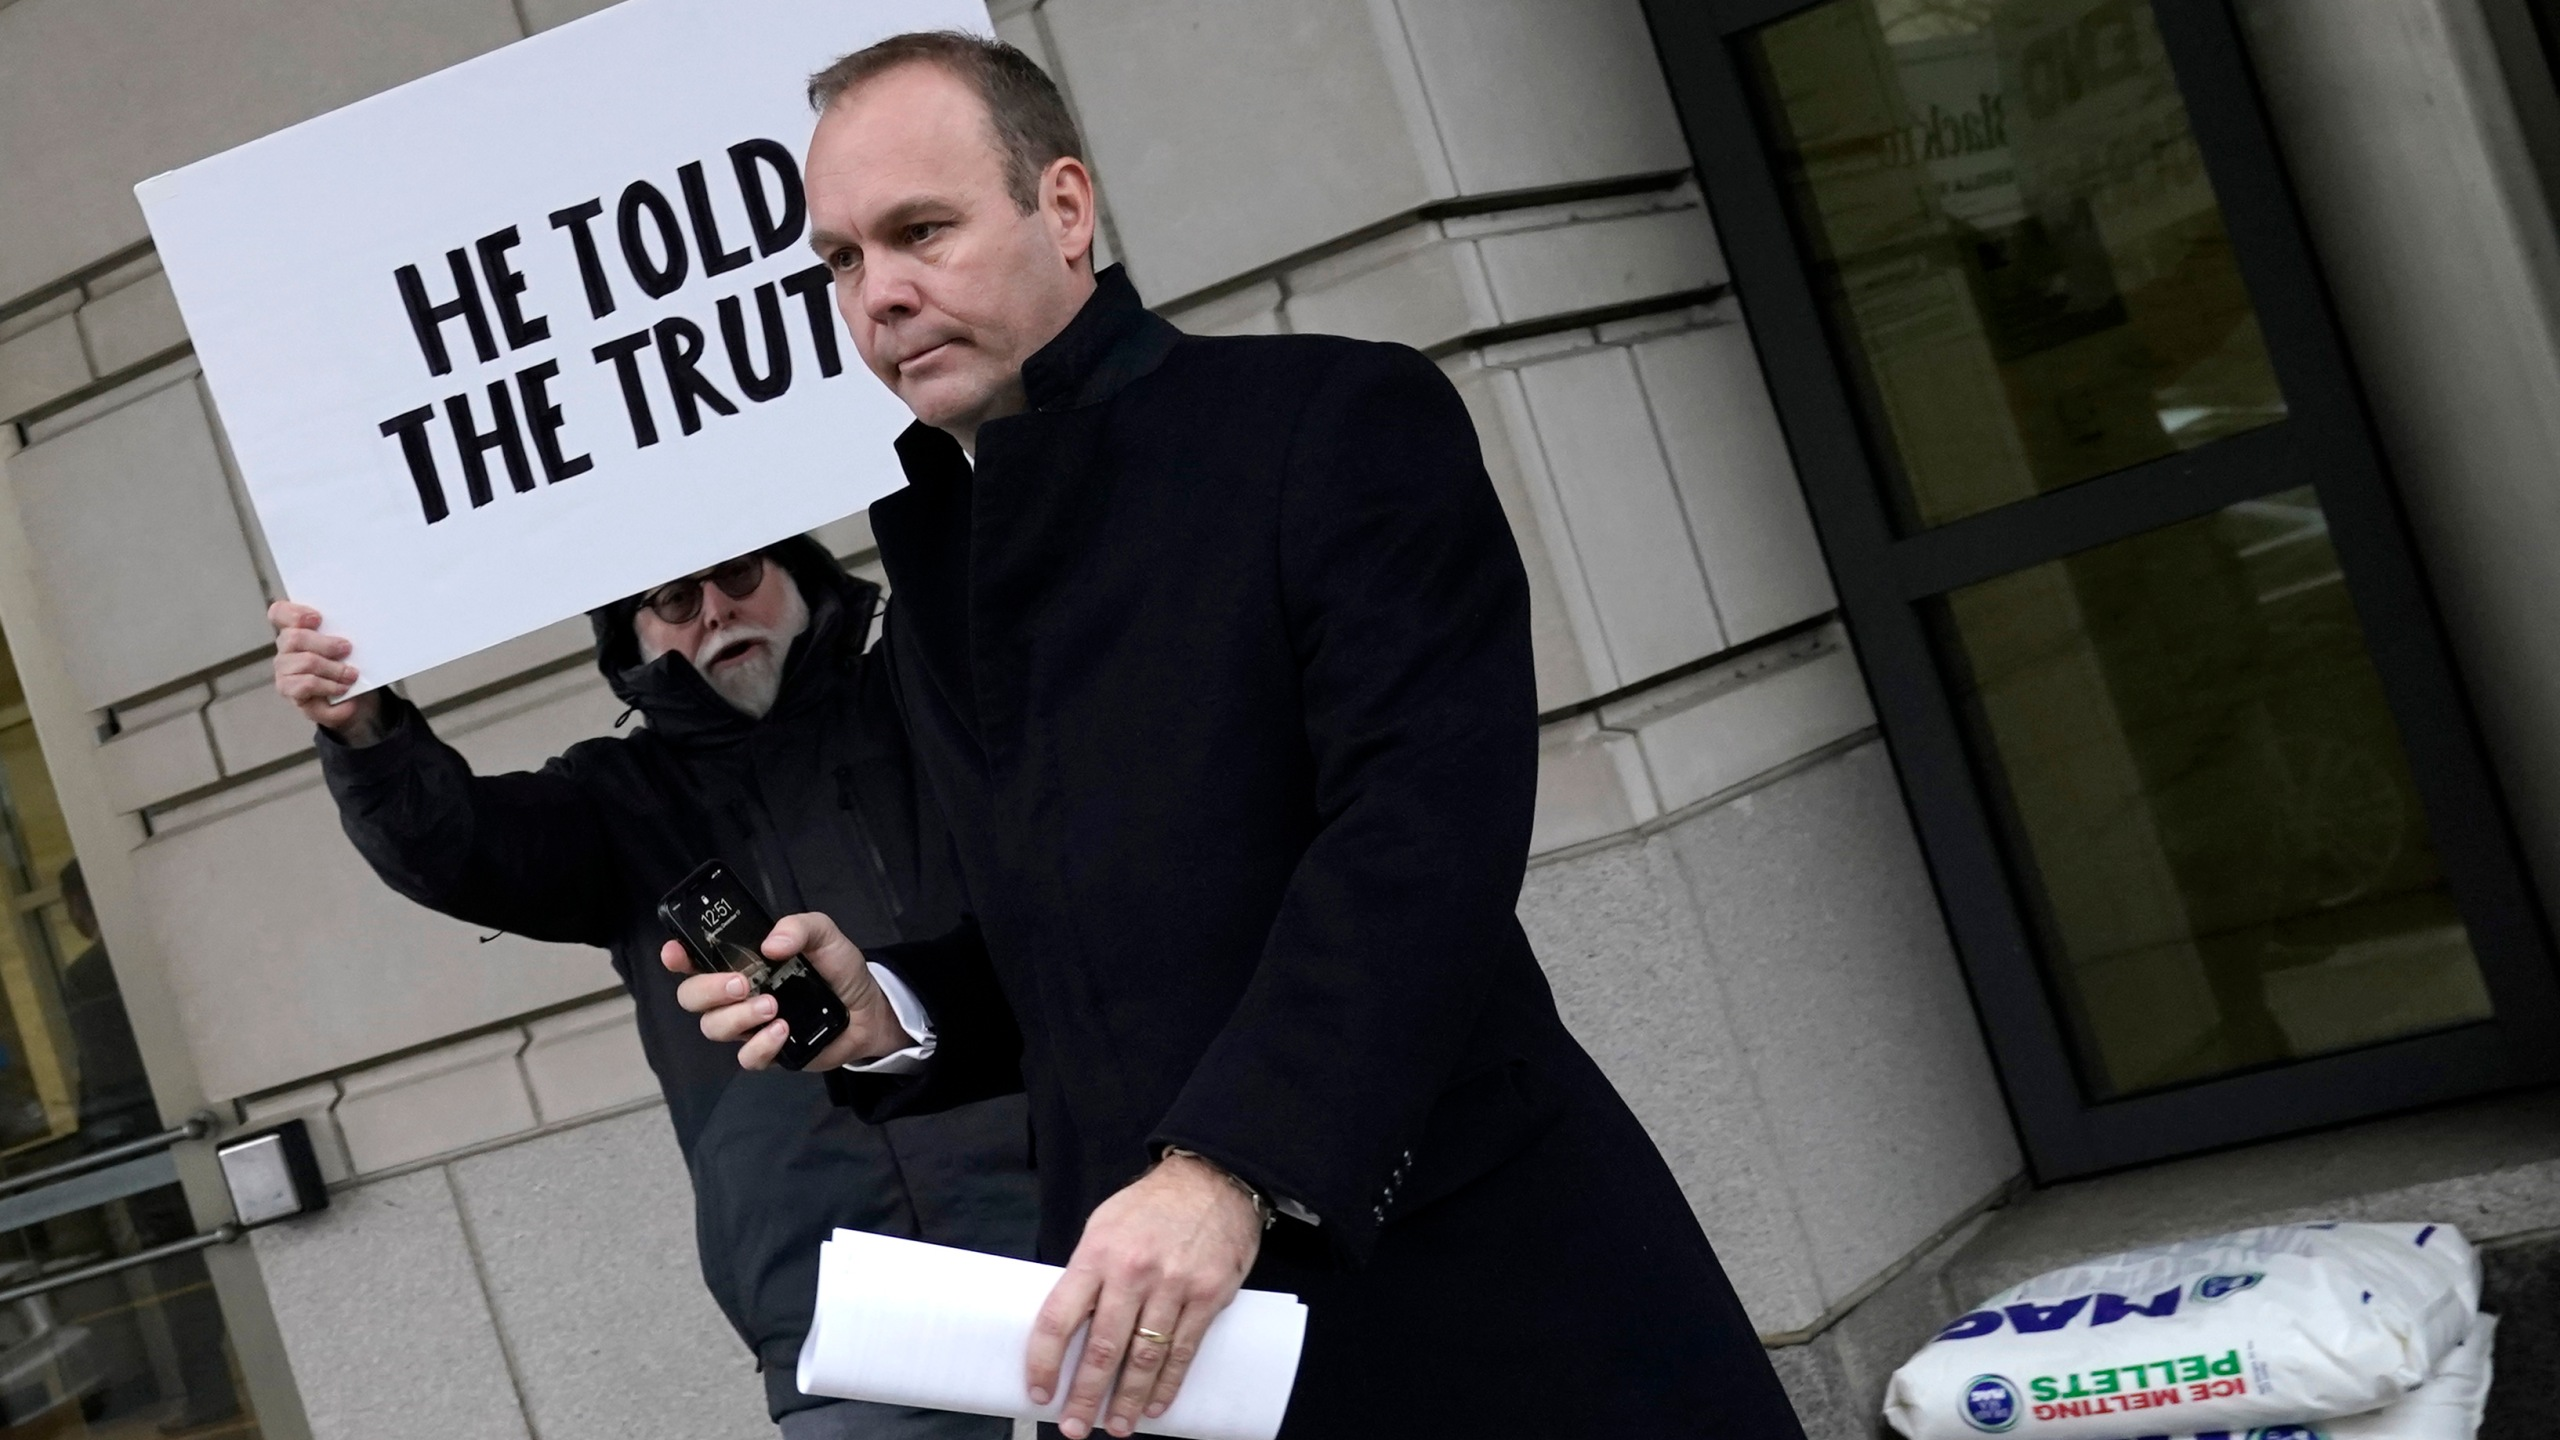 Former Trump campaign aide Rick Gates leaves federal court after sentencing on Dec. 17, 2019 in Washington, D.C. (Credit: Win McNamee/Getty Images)